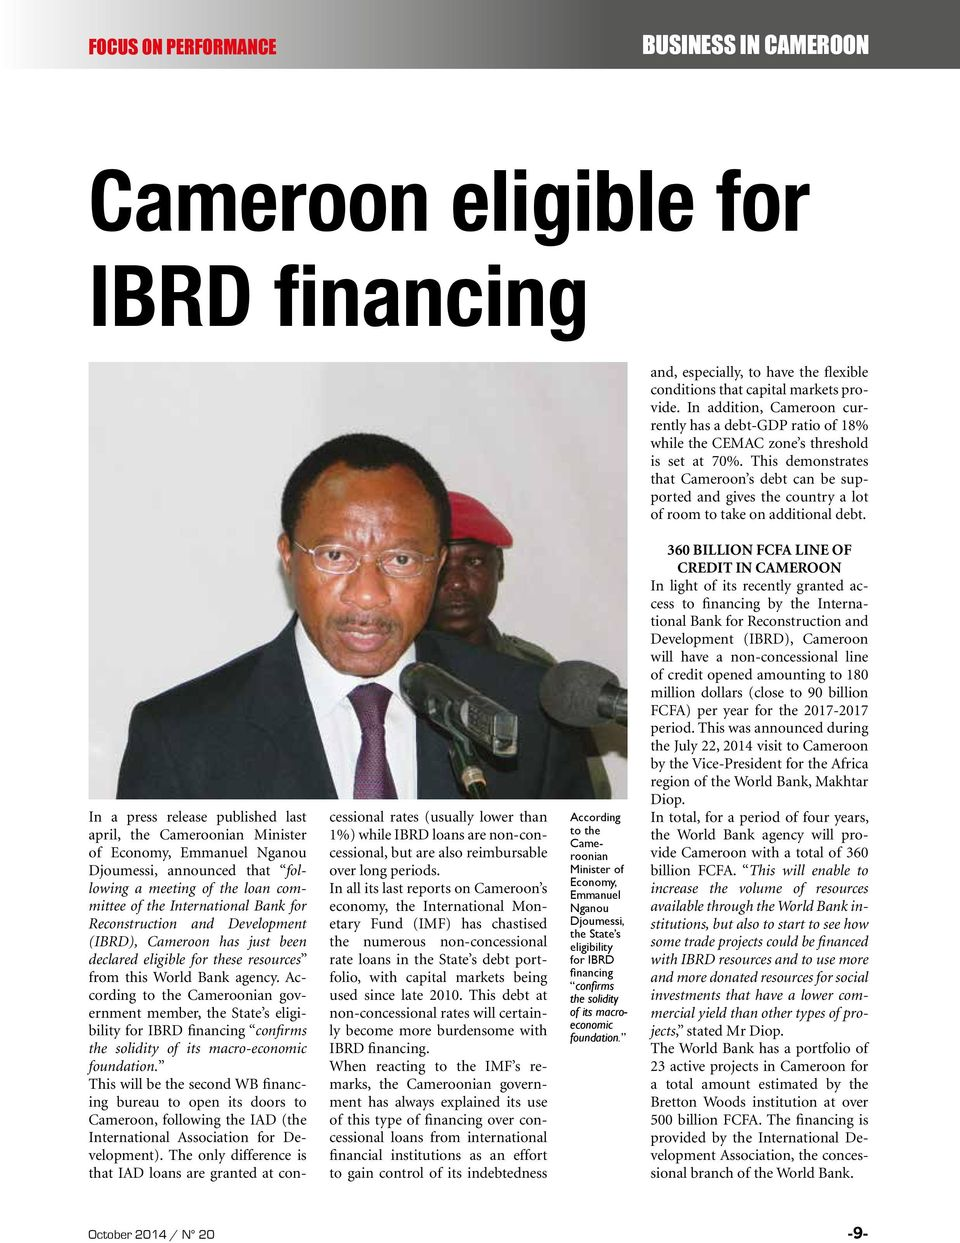 This demonstrates that Cameroon s debt can be supported and gives the country a lot of room to take on additional debt.